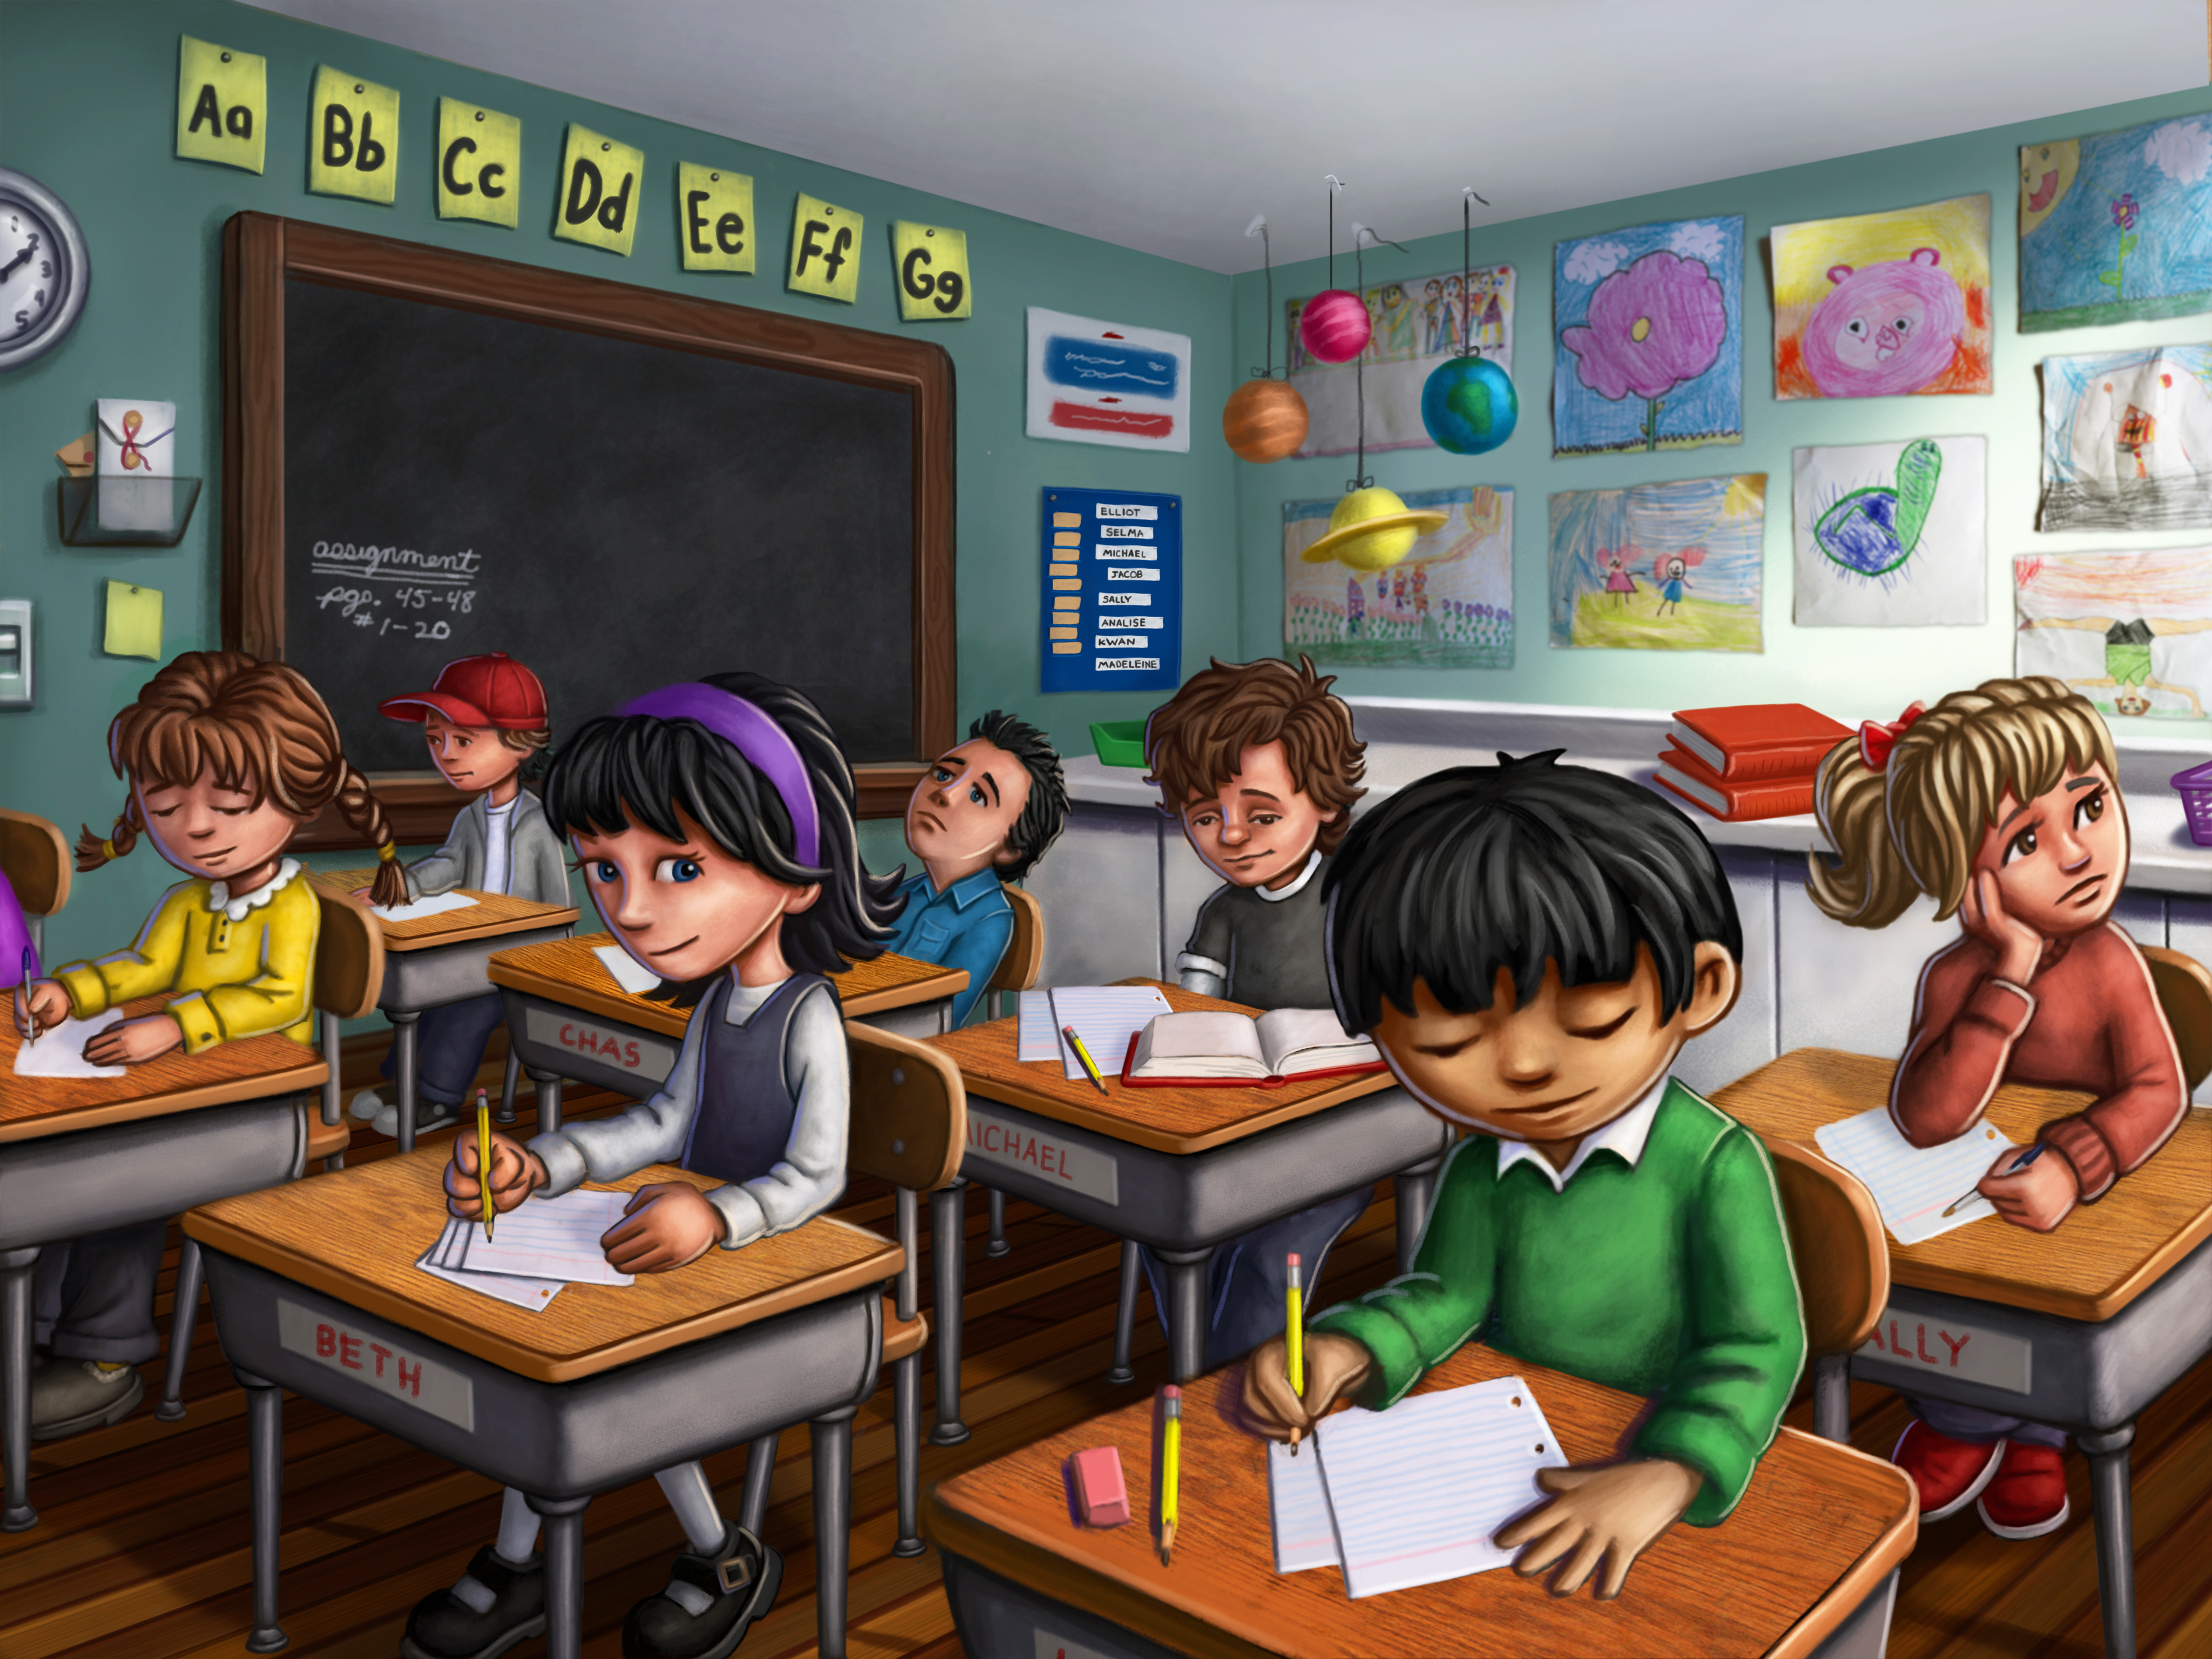 School class clipart 20 free Cliparts | Download images on ...